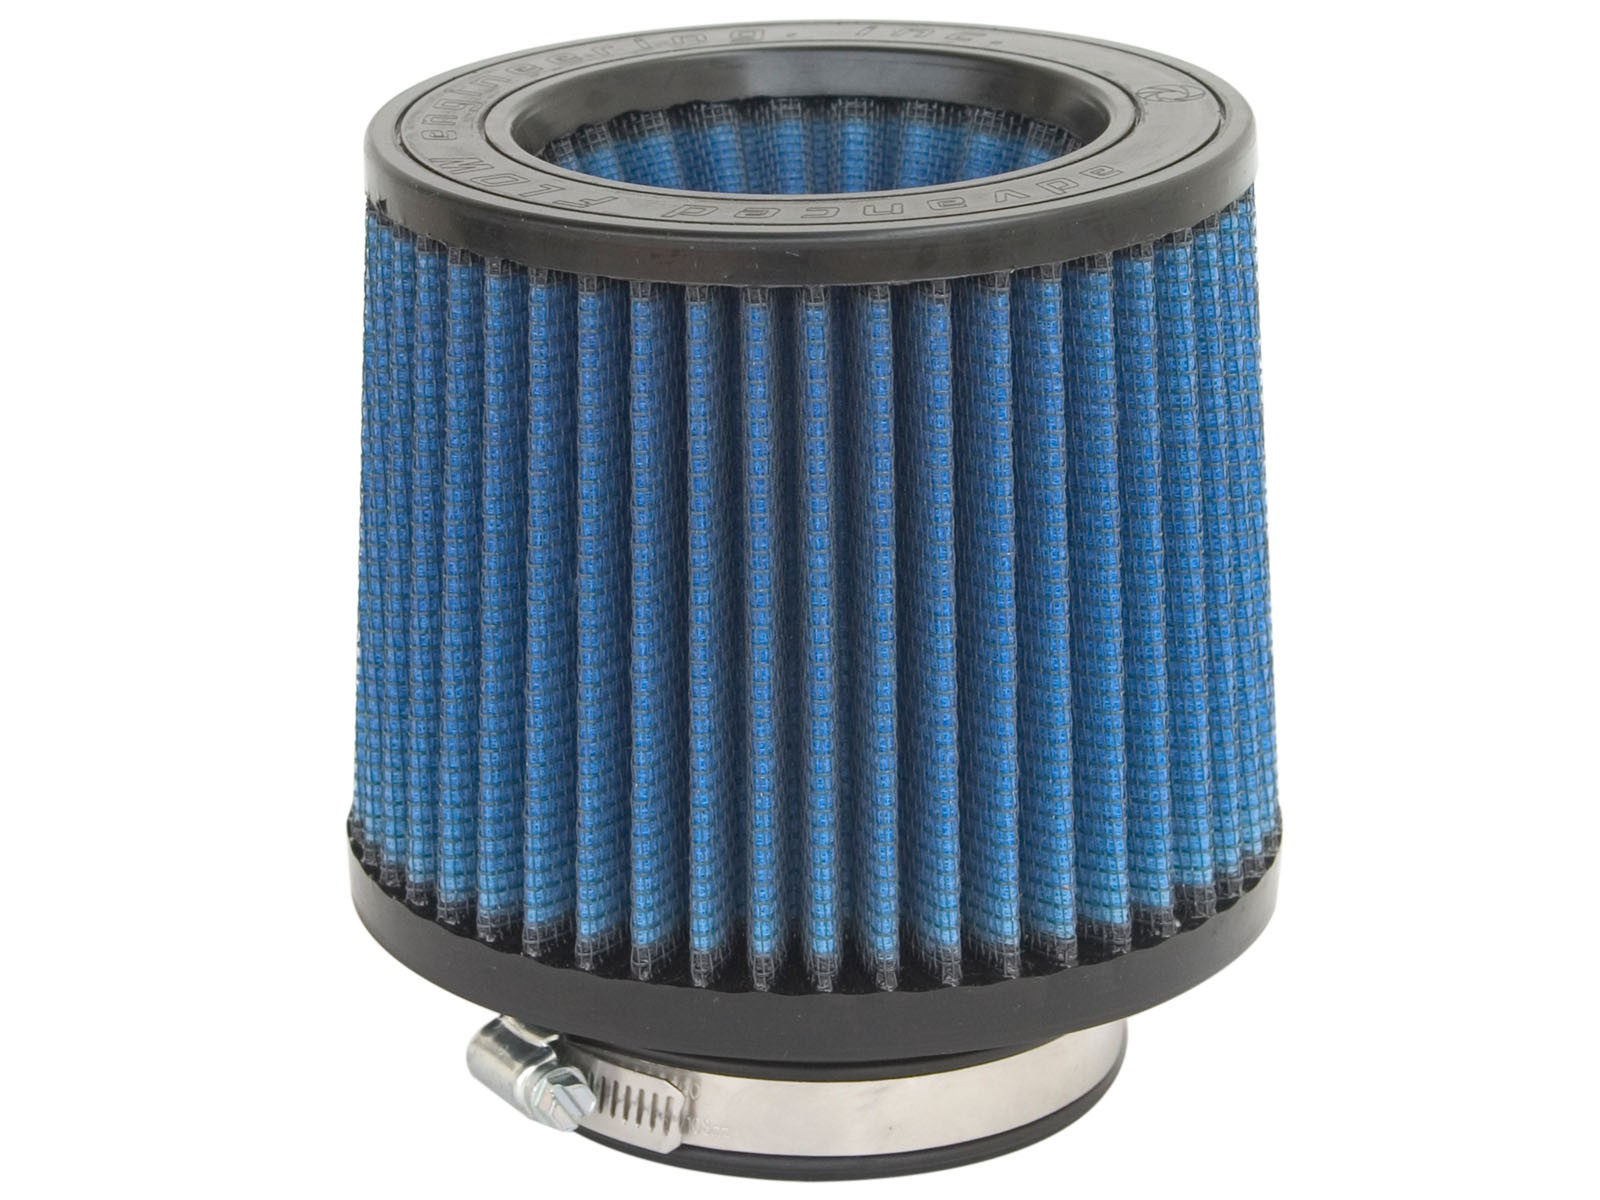 aFe POWER 24-91016 Magnum FLOW Pro 5R Air Filter